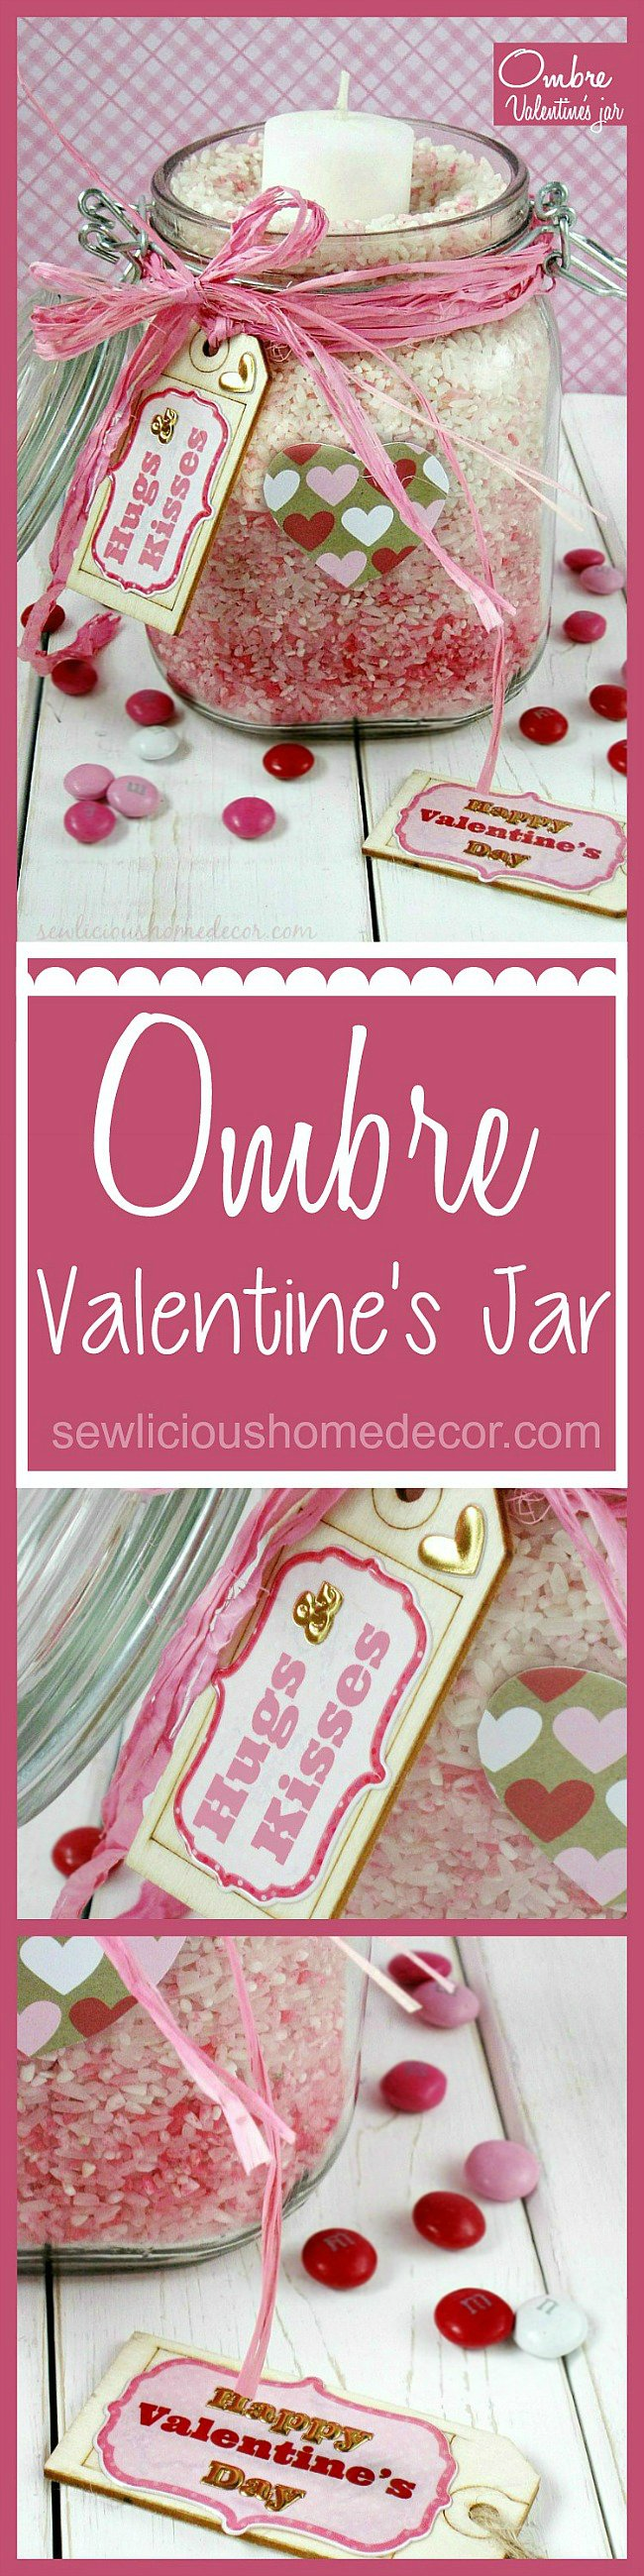 Ombre Valentines Day Jars sewlicioushomedecor